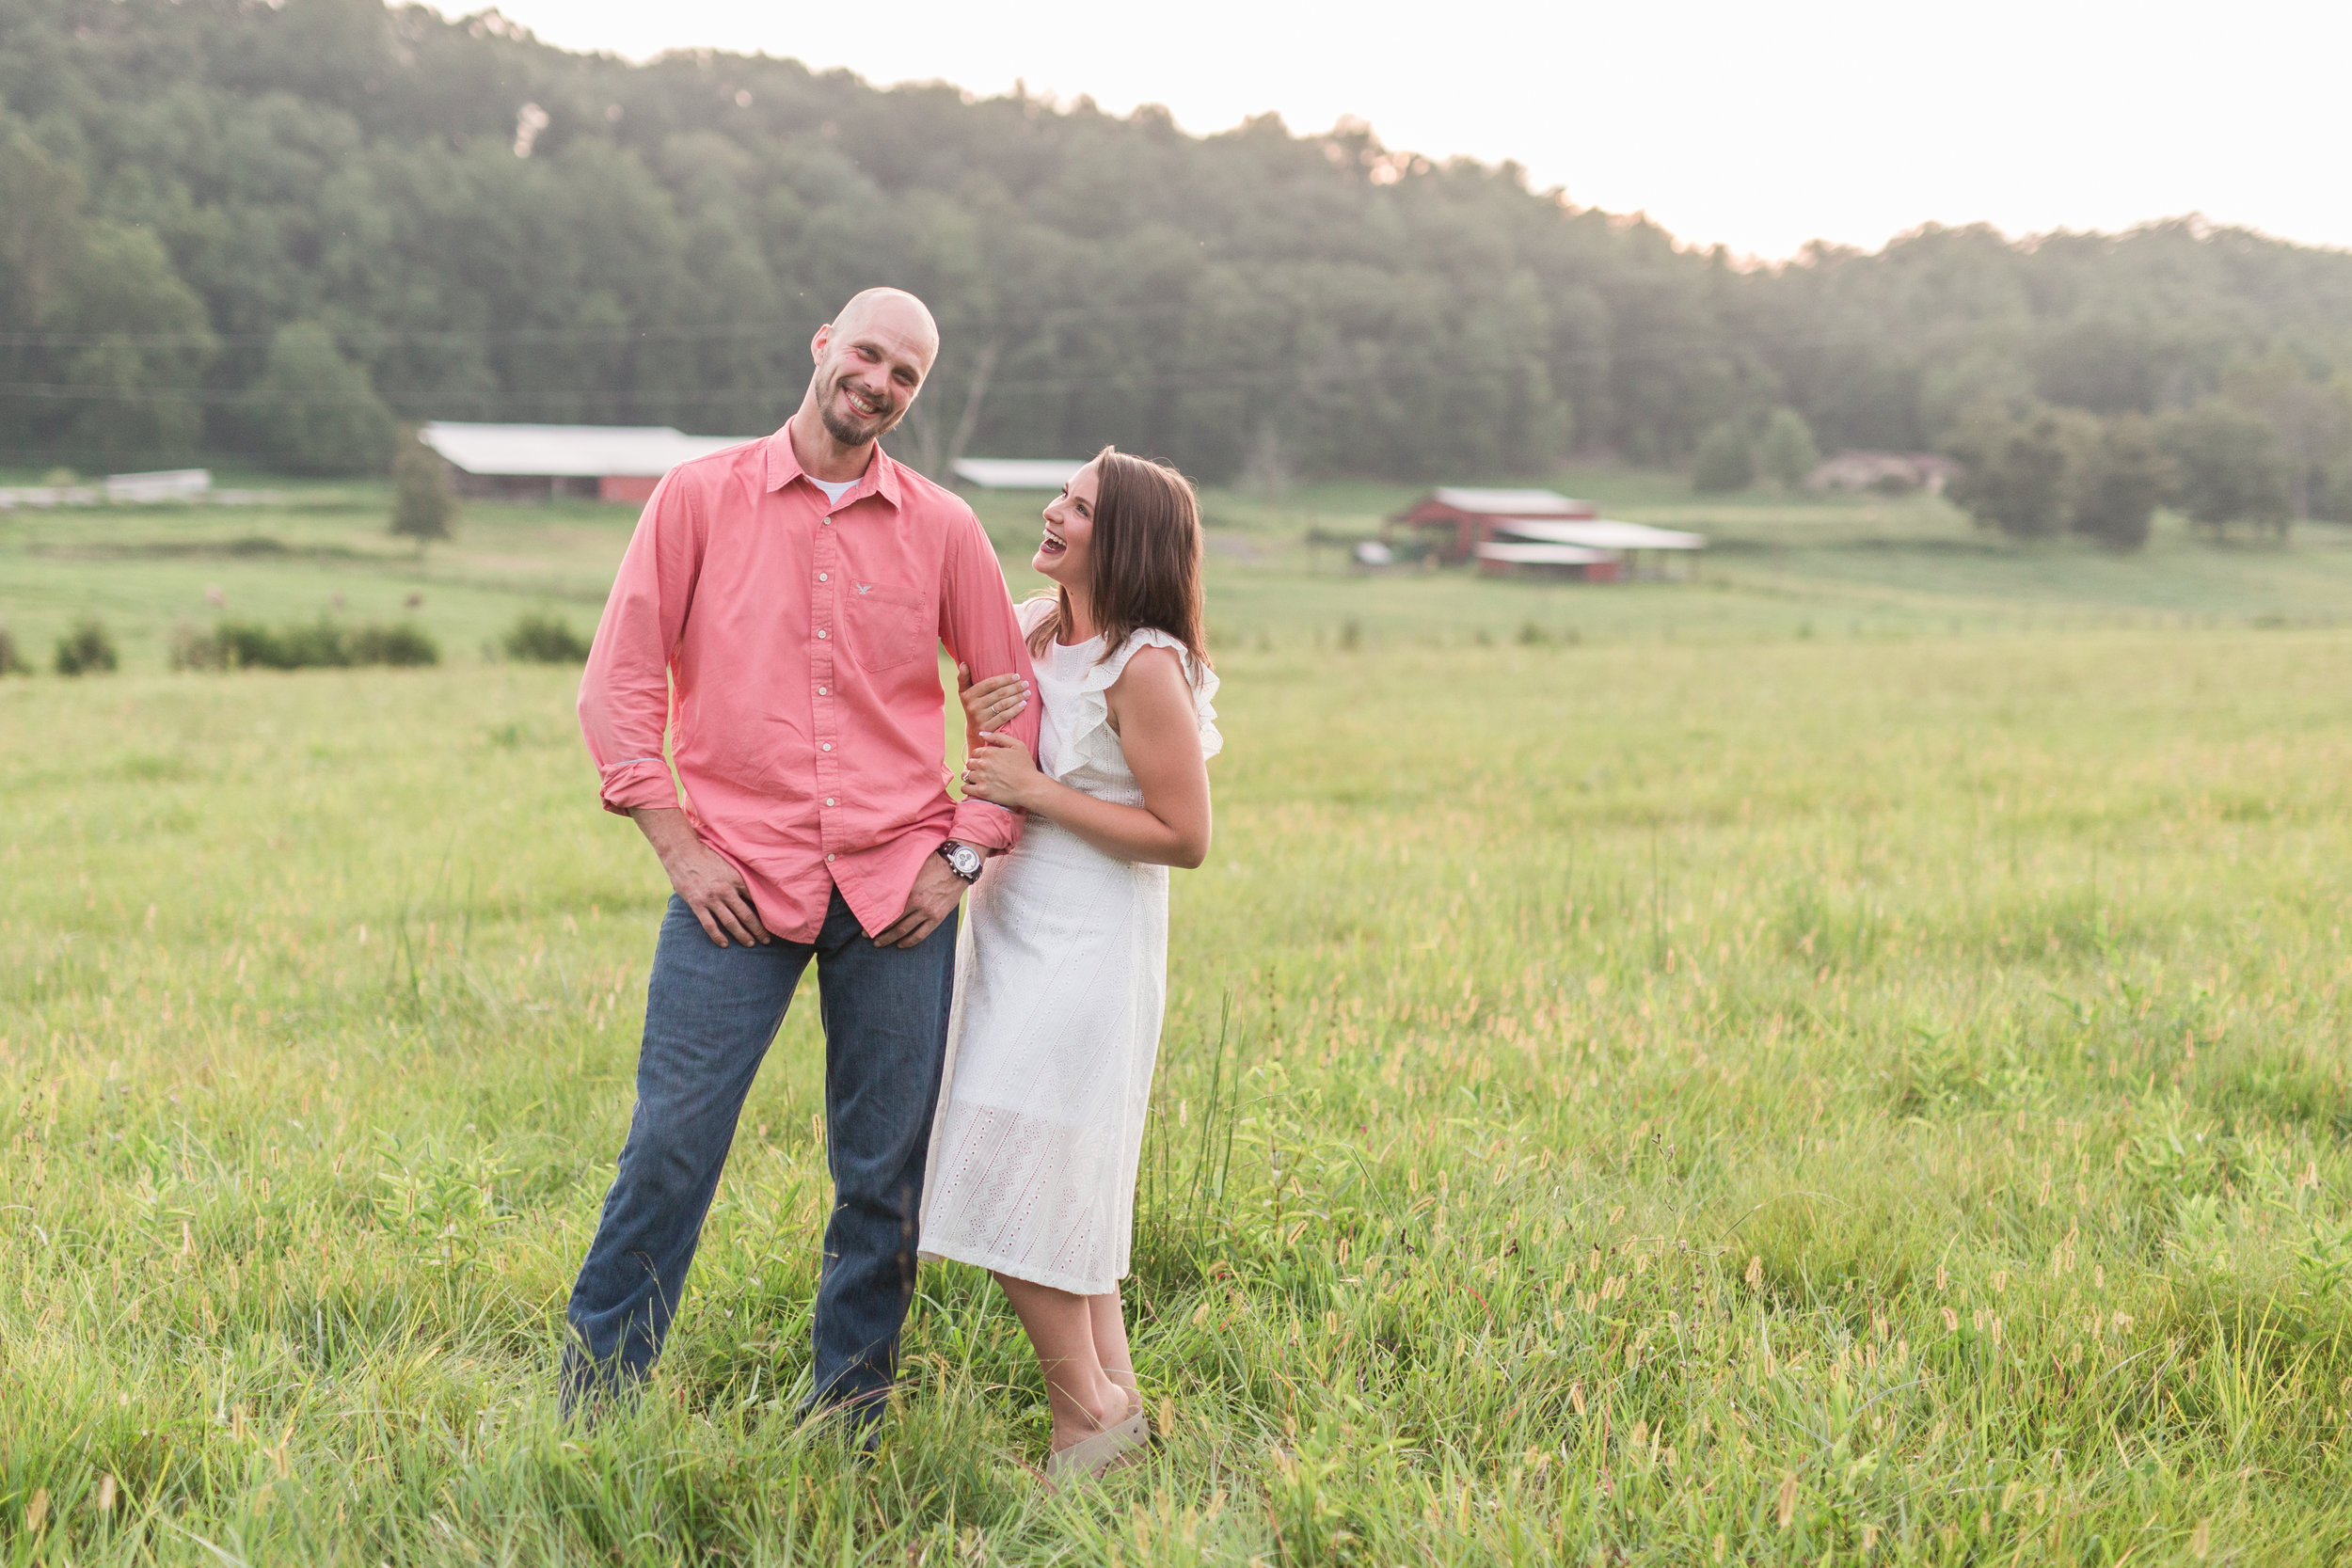 Eagle Rock Engagement Session || Summer Engagement Session in Central Virginia || Virginia Wedding Photographer || Ashley Eiban Photography